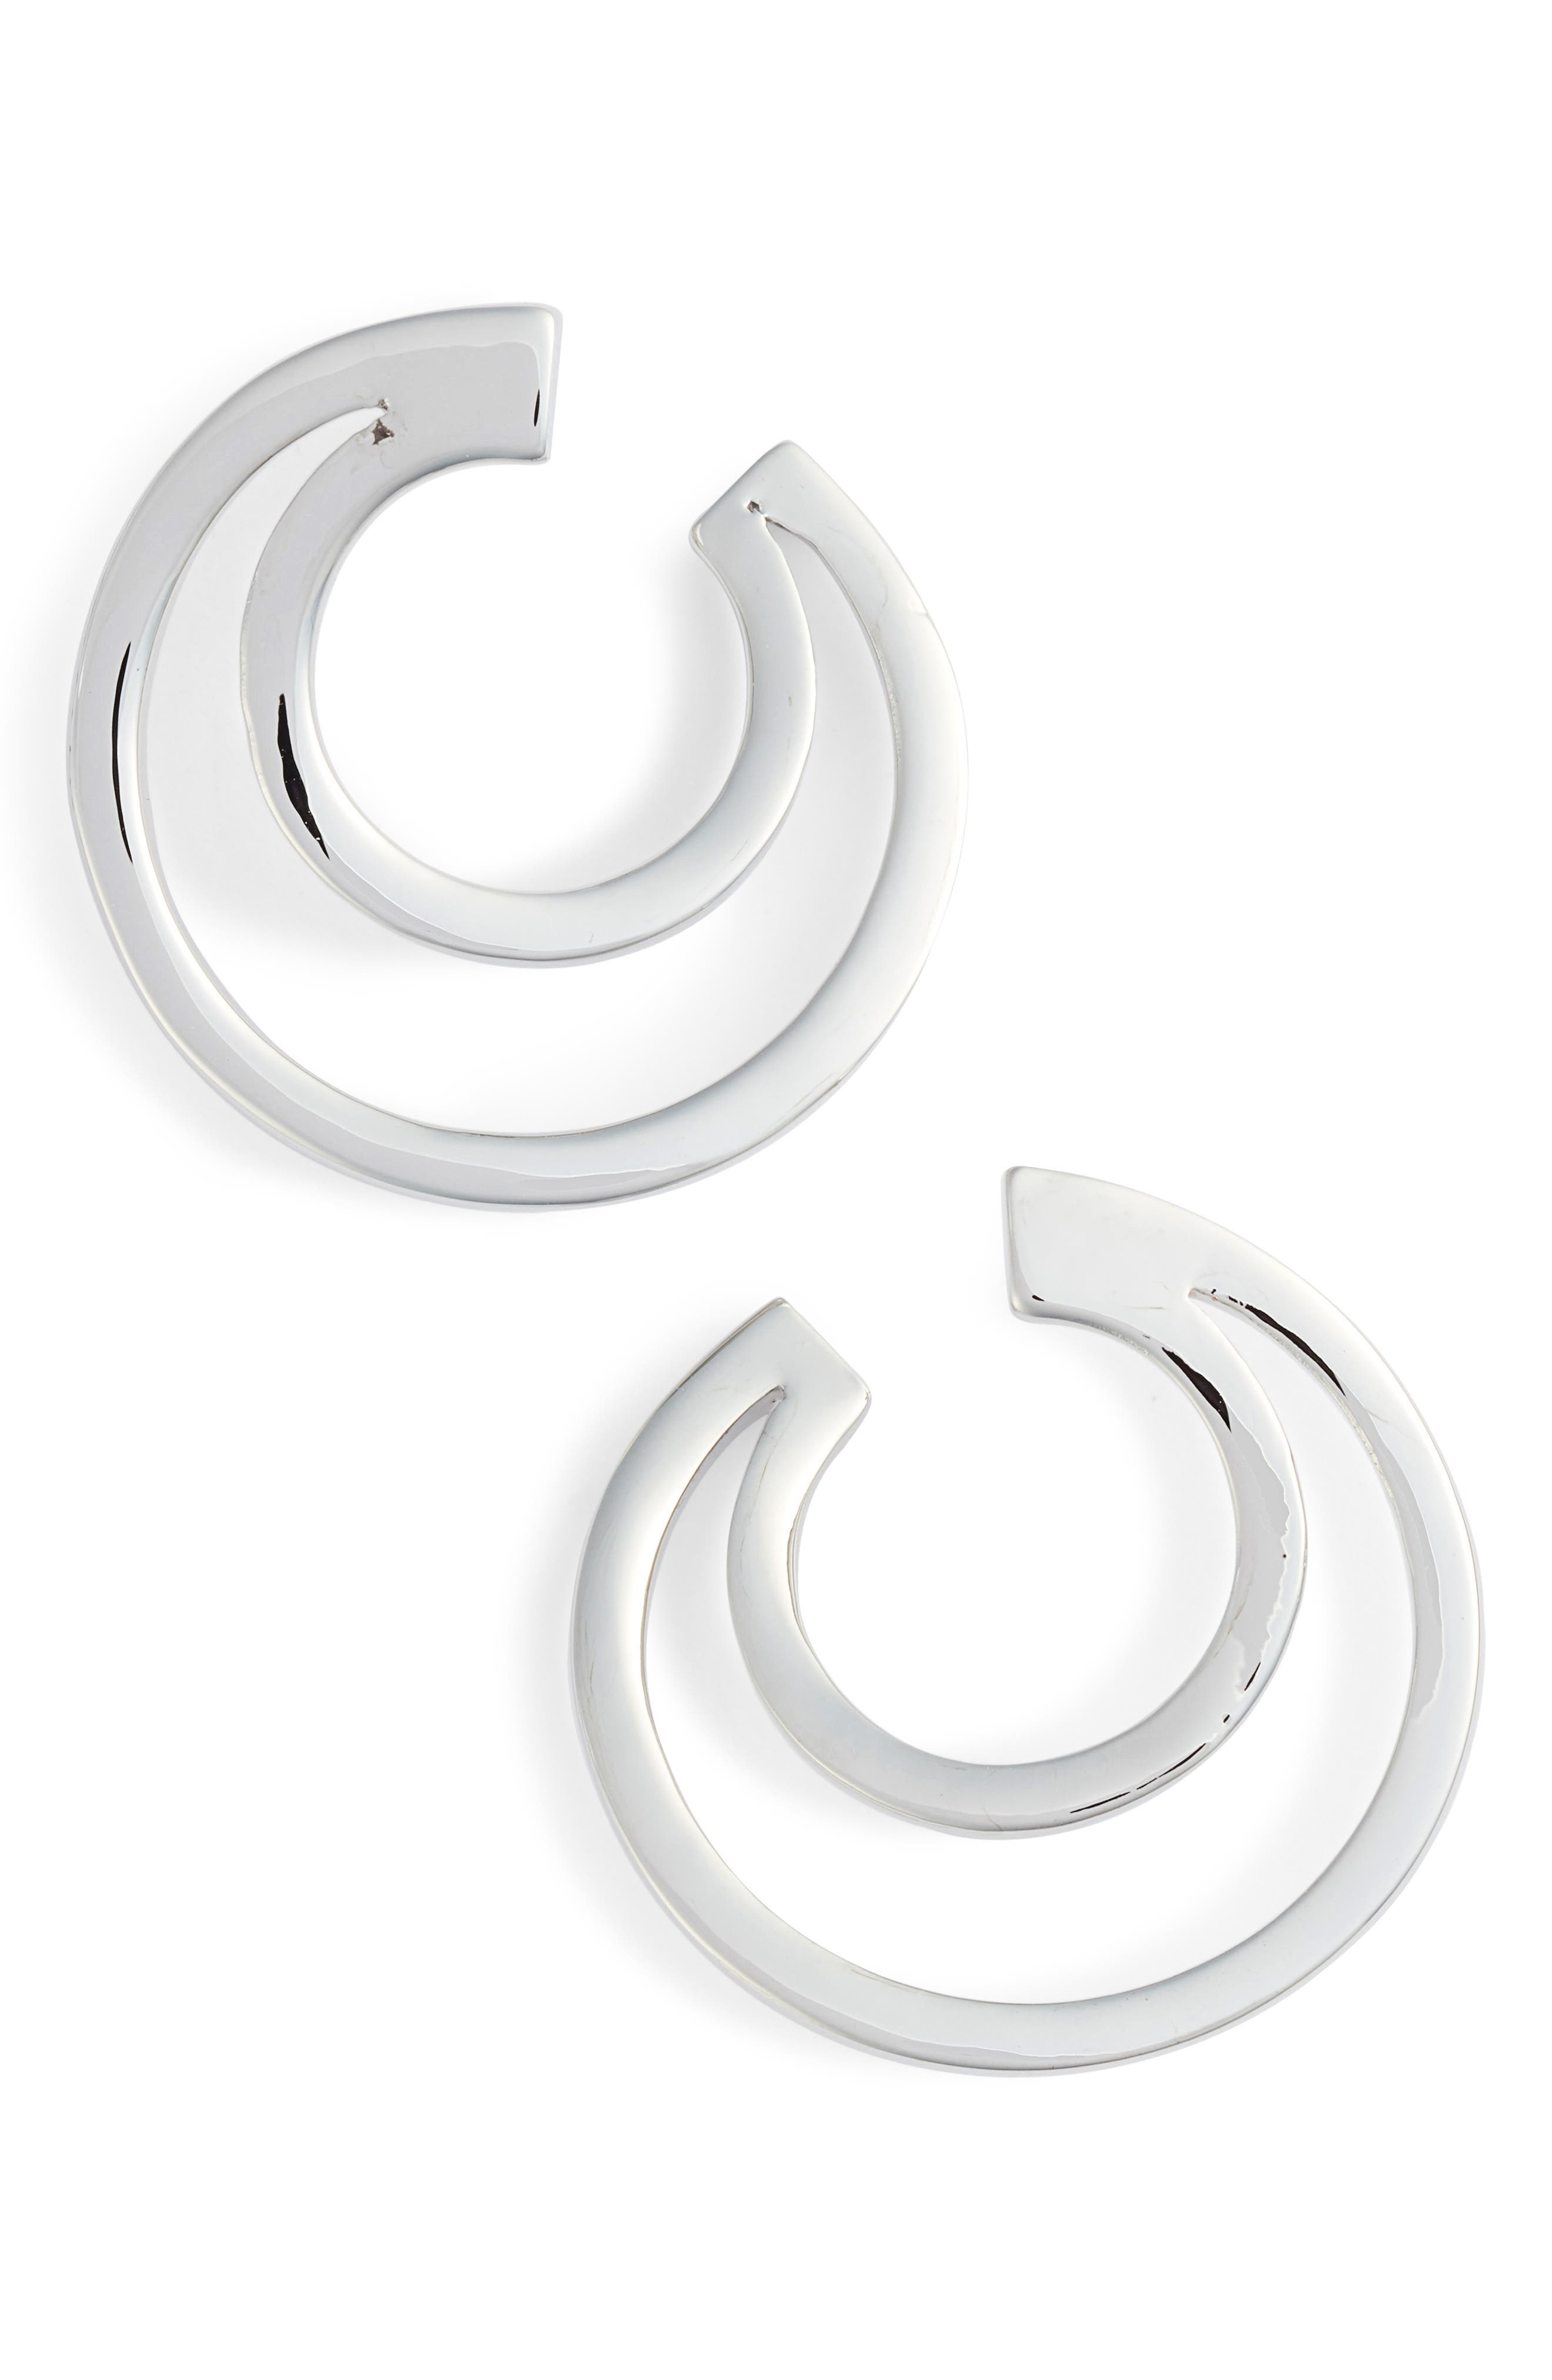 Polished Curved Earrings,                         Main,                         color, 040